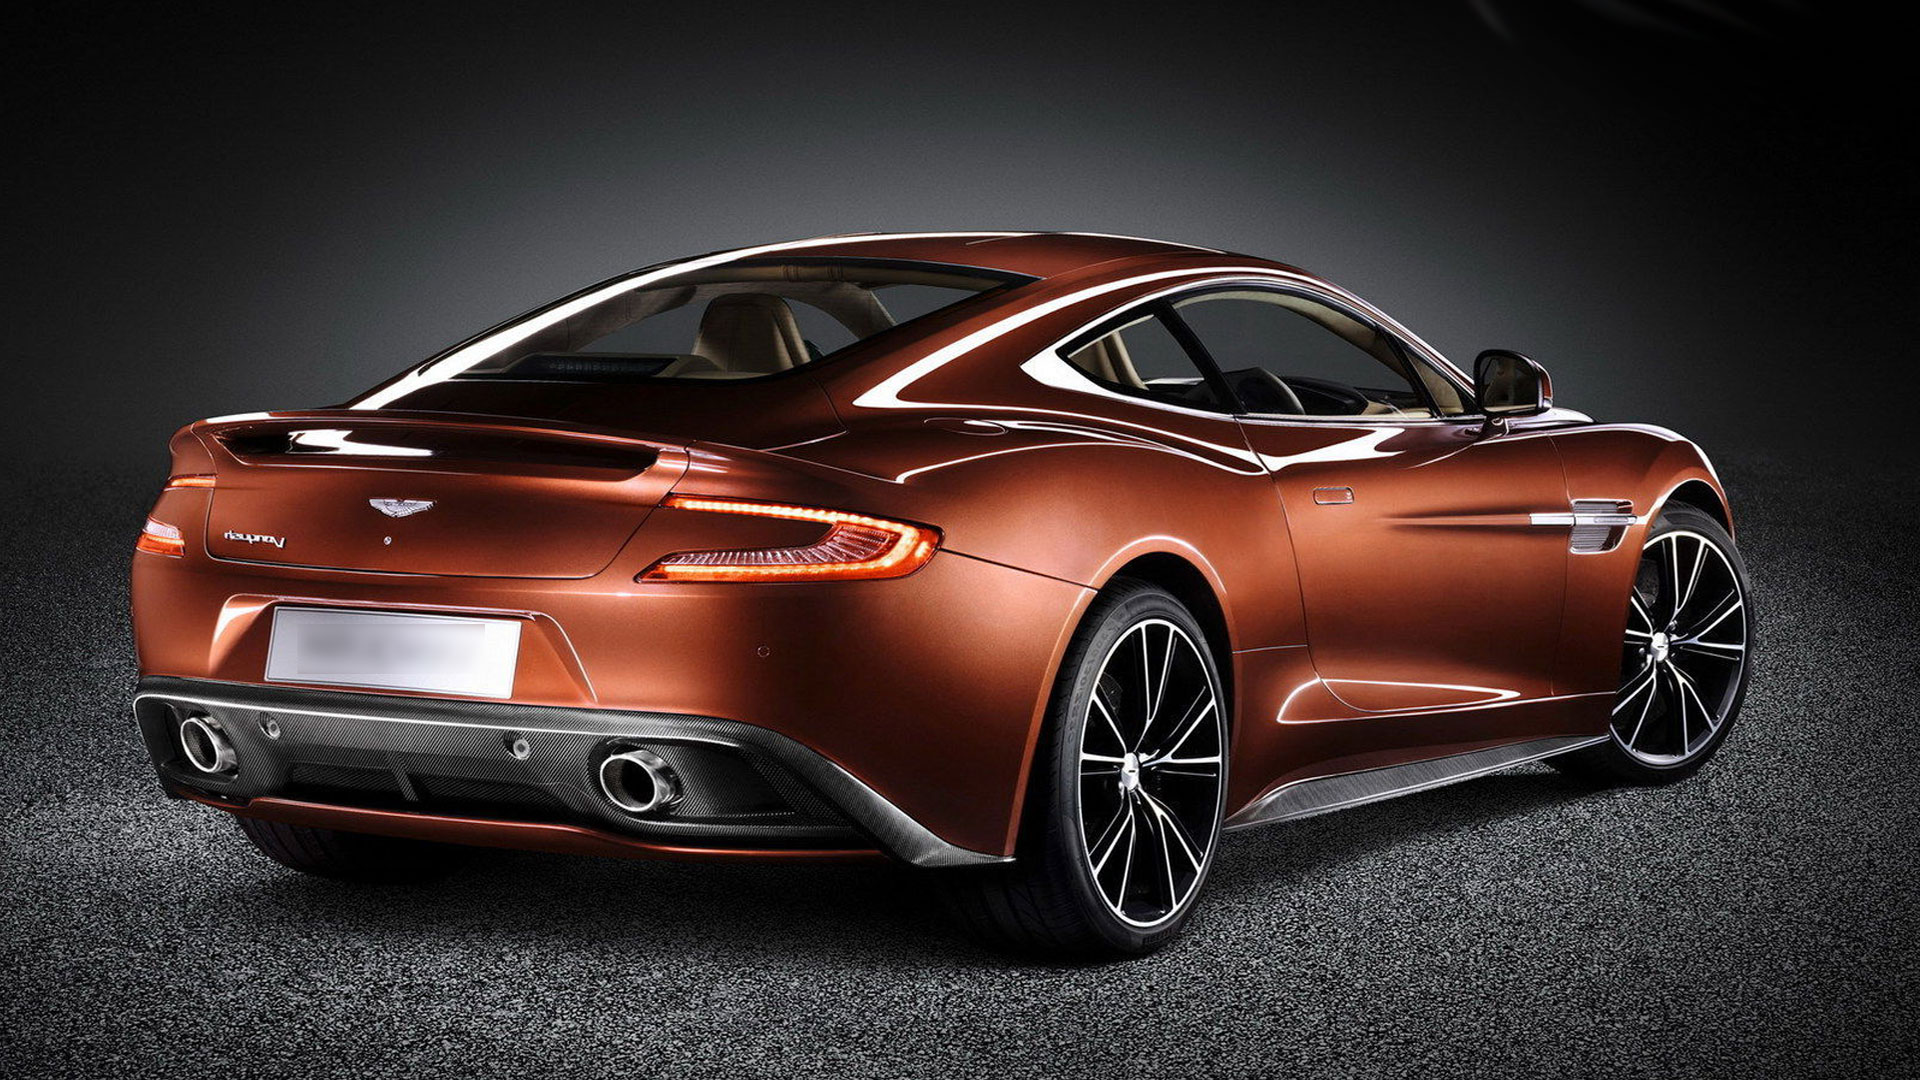 in Uncategorized Tagged Aston Martin Vanquish Leave a comment 1920x1080